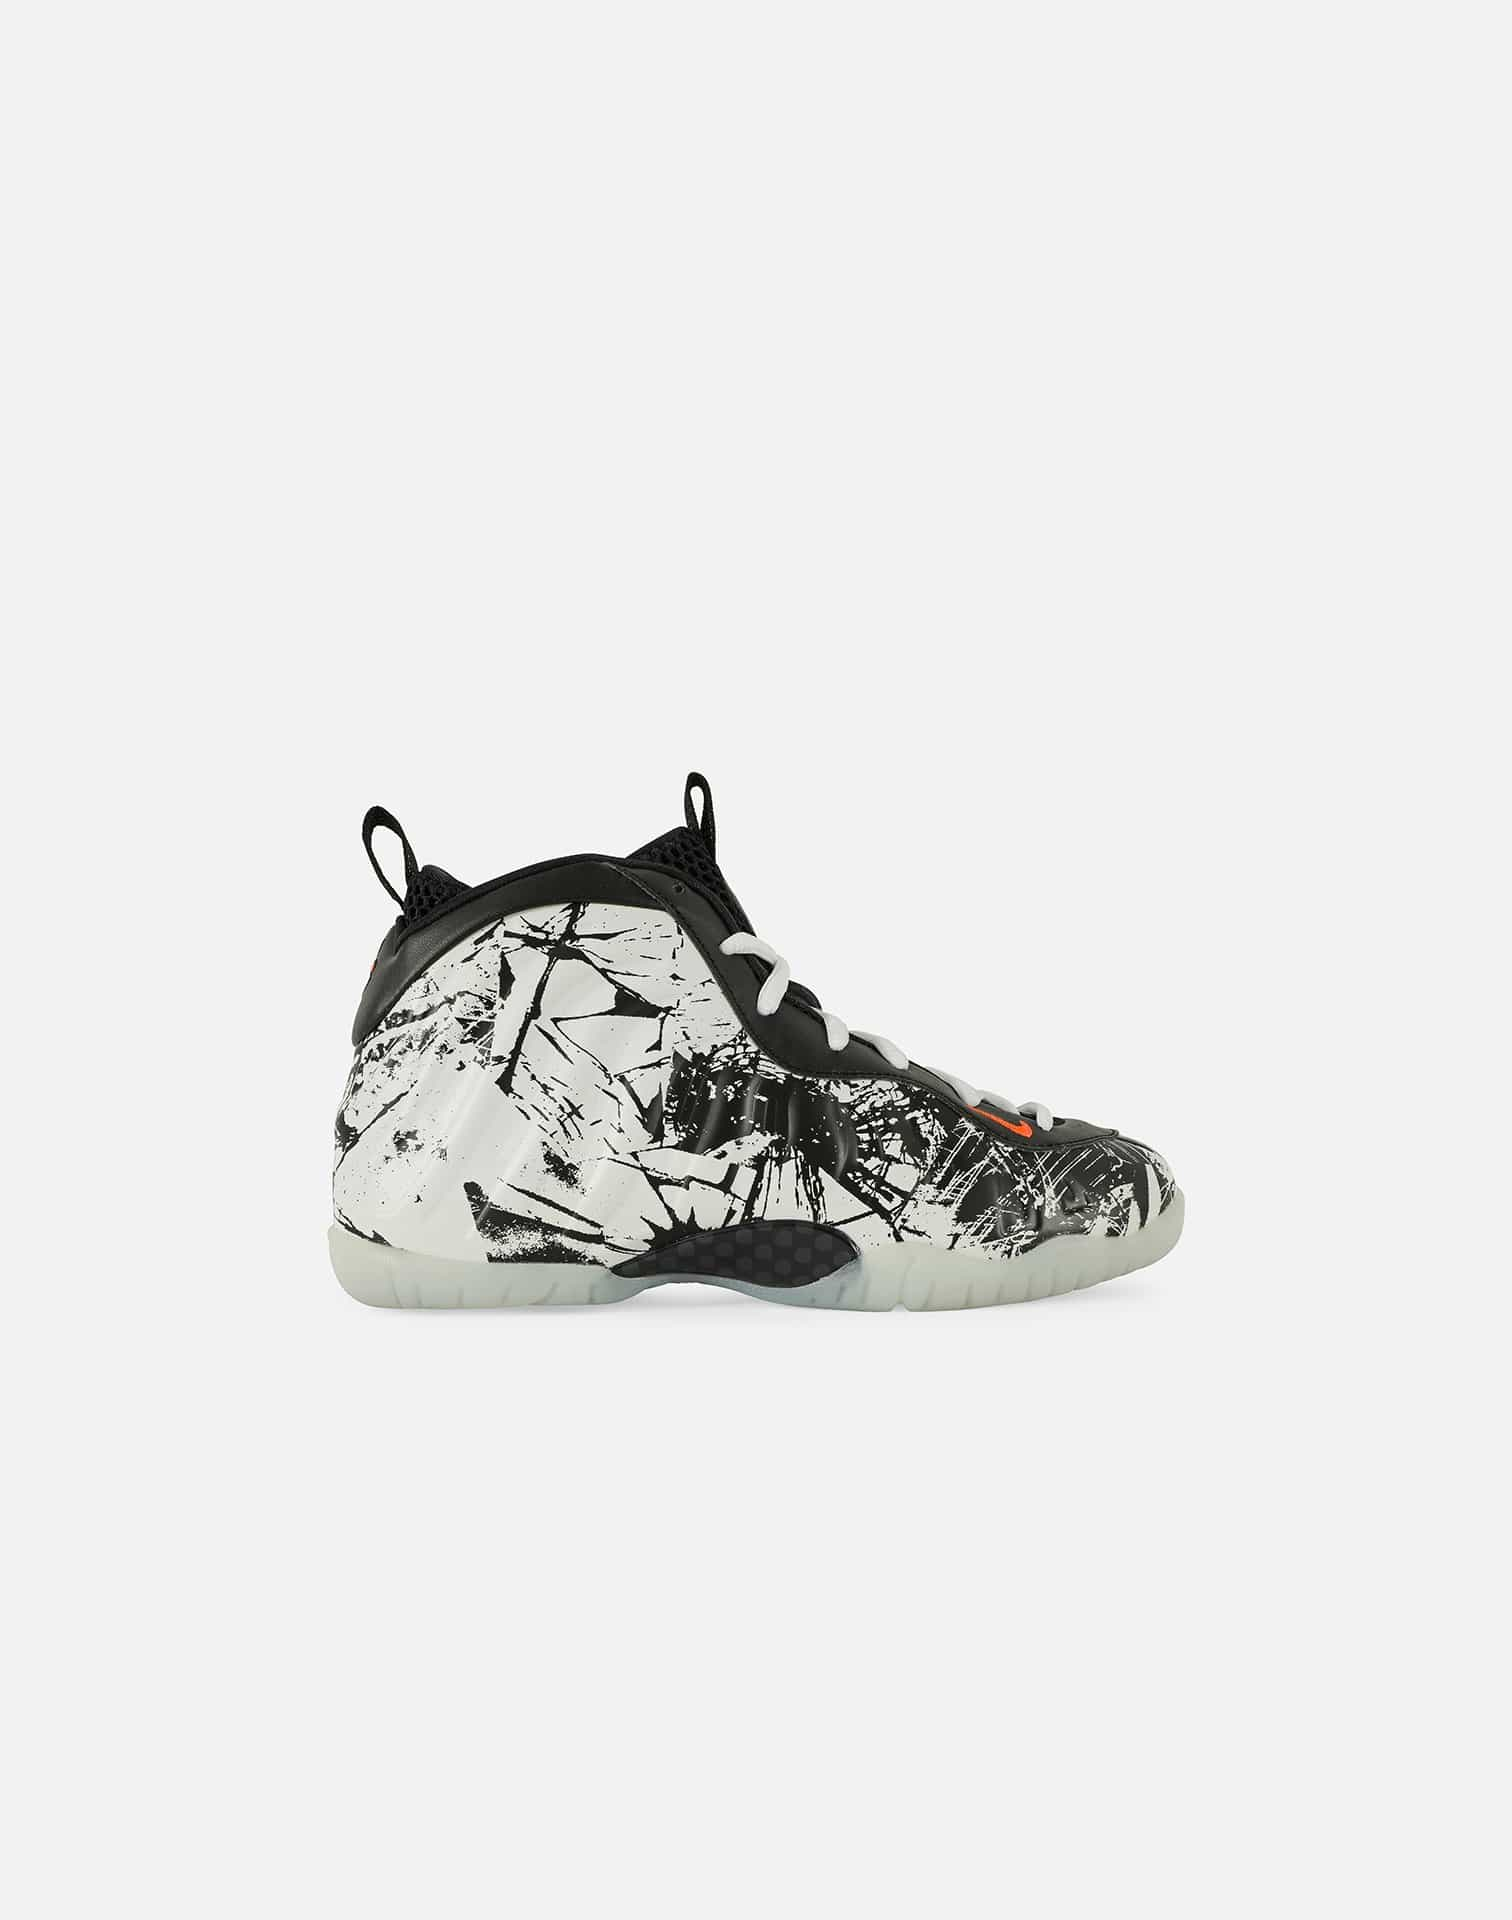 Nike LIL POSITE ONE 'SHATTERED BACKBOARD' PRE-SCHOOL